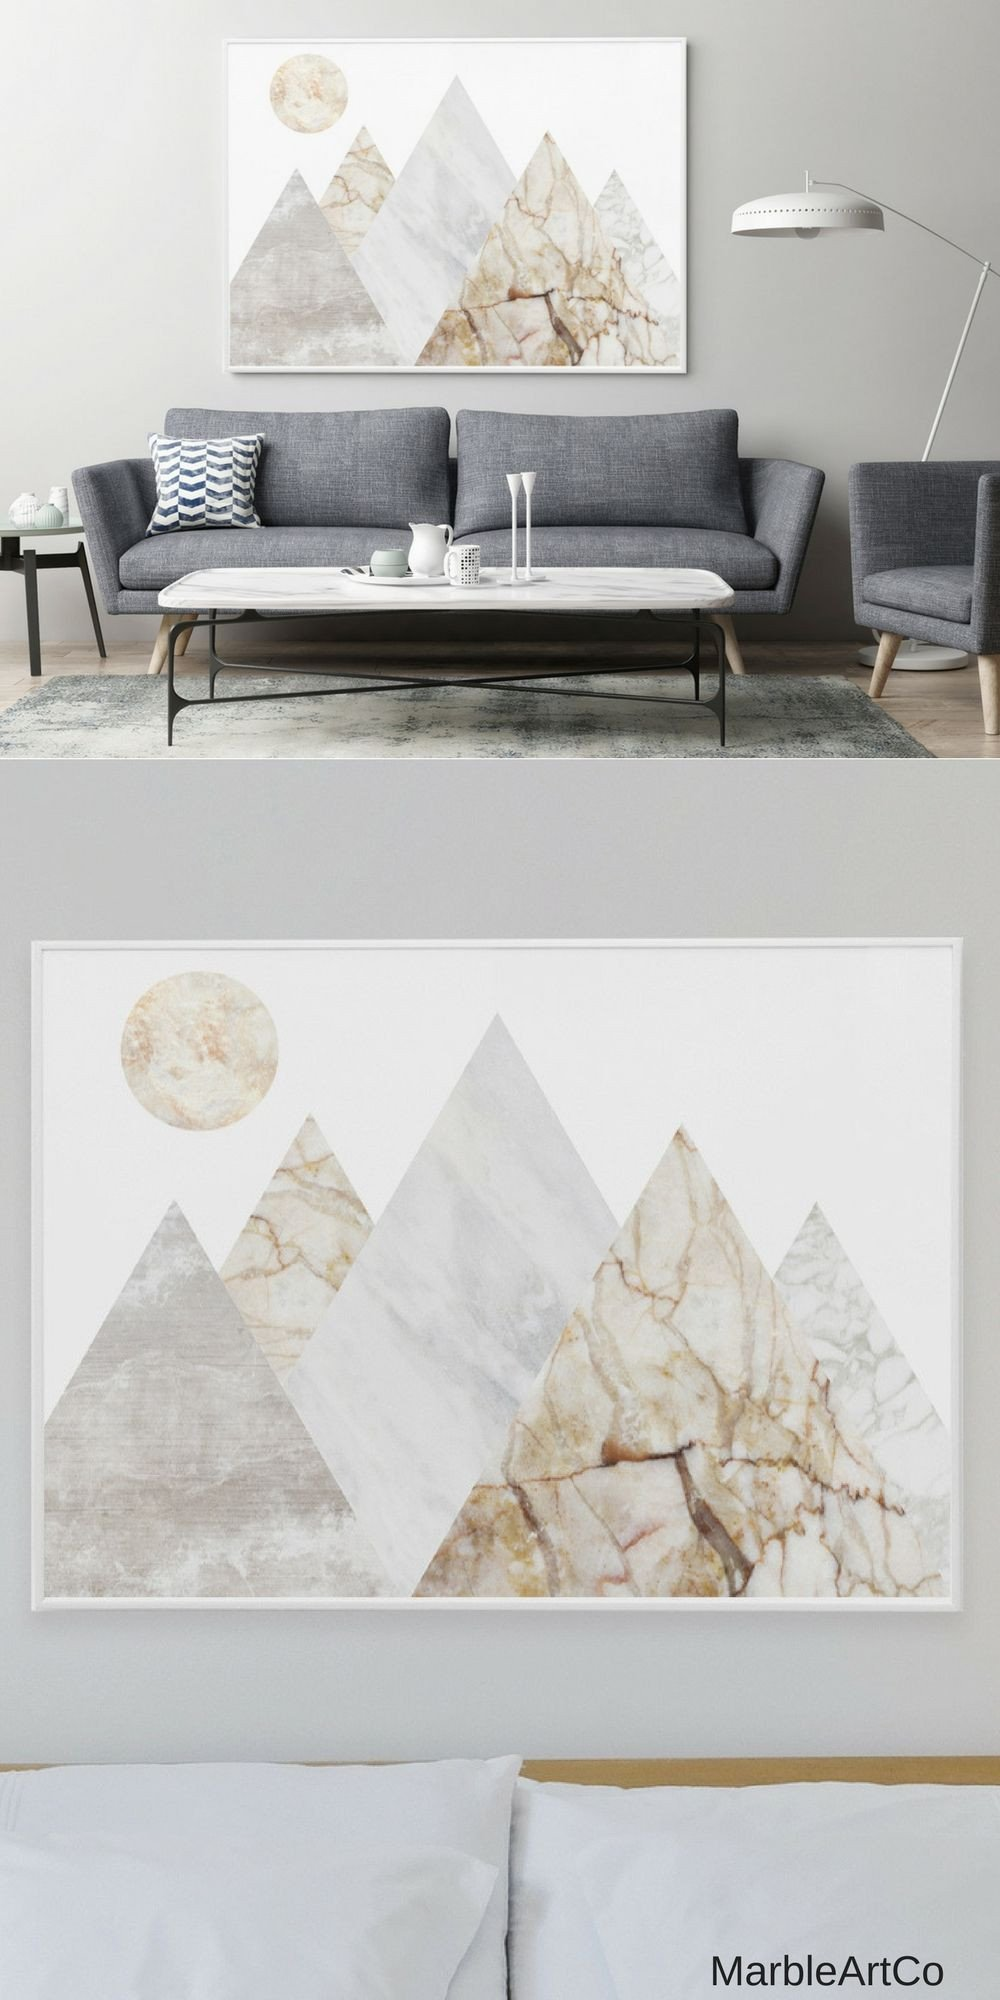 Arts for Bedroom Walls Unique Mountains Extra Wall Art Bedroom Decor Nature Framed